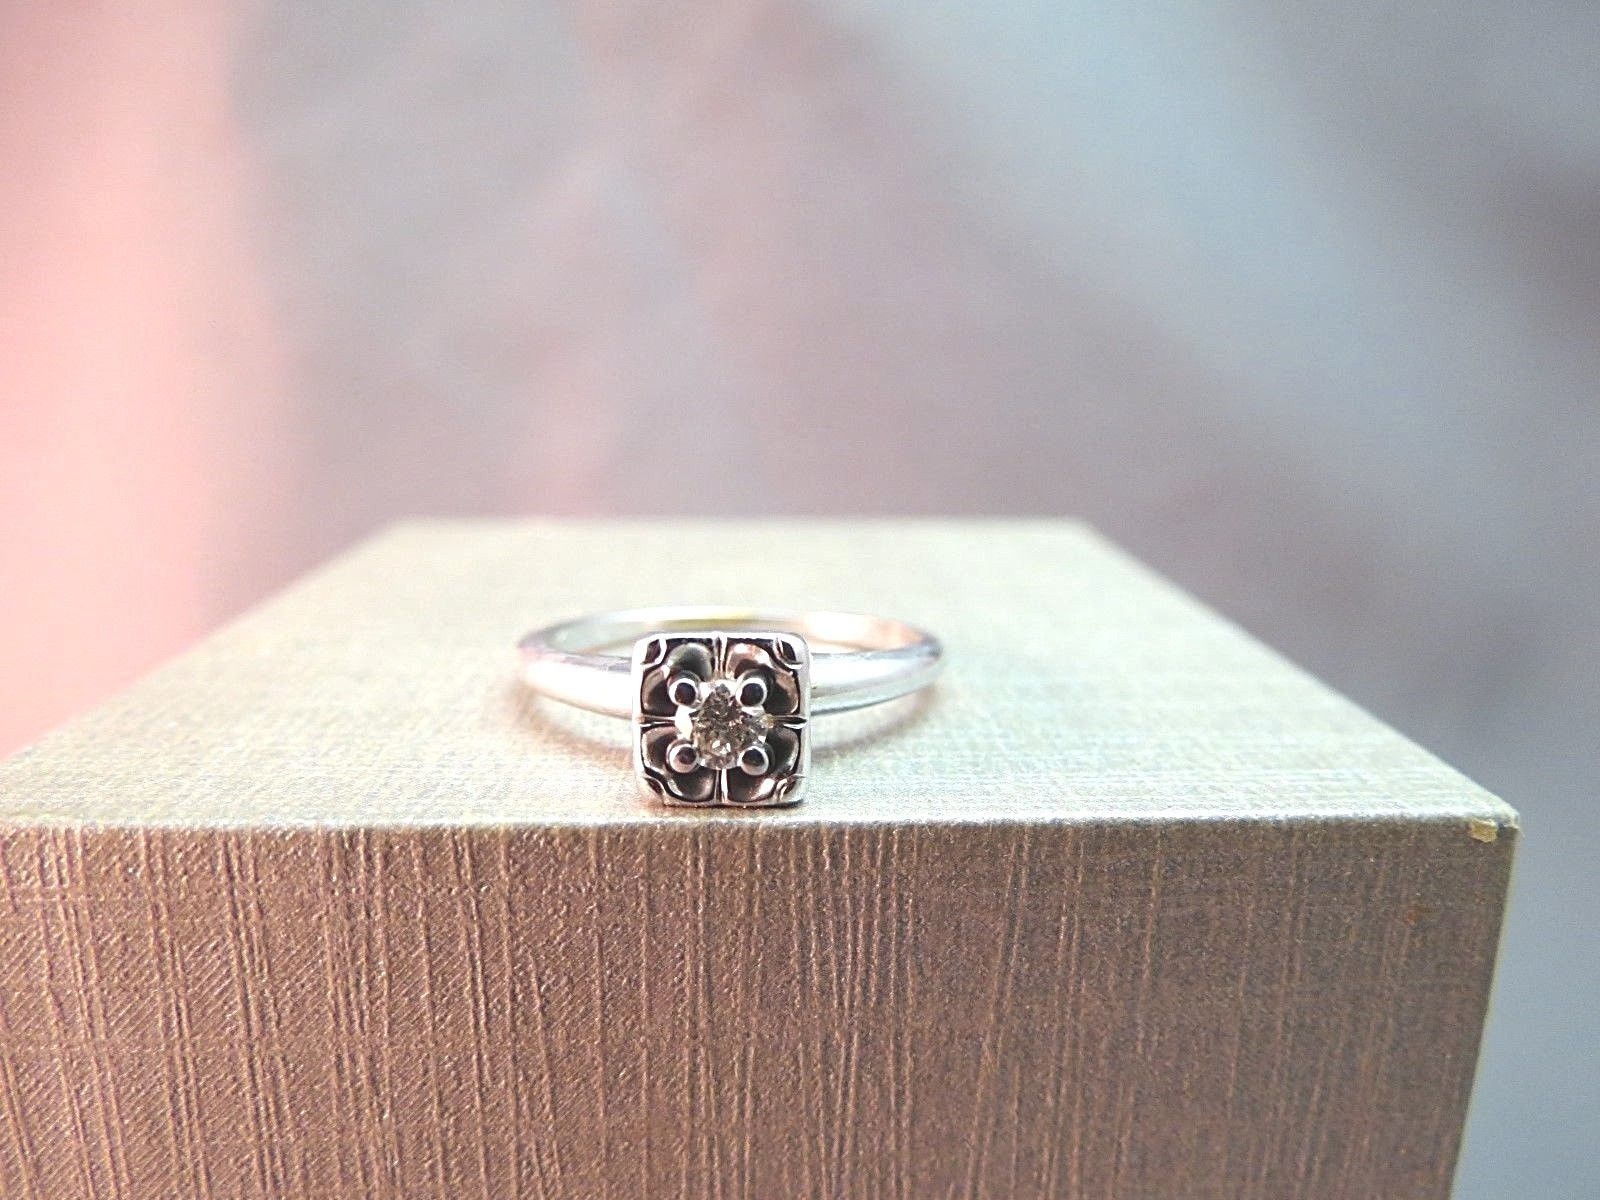 14k White Gold Antique Diamond Solitaire Engagement Ring 2.35g Size 7.5 Square